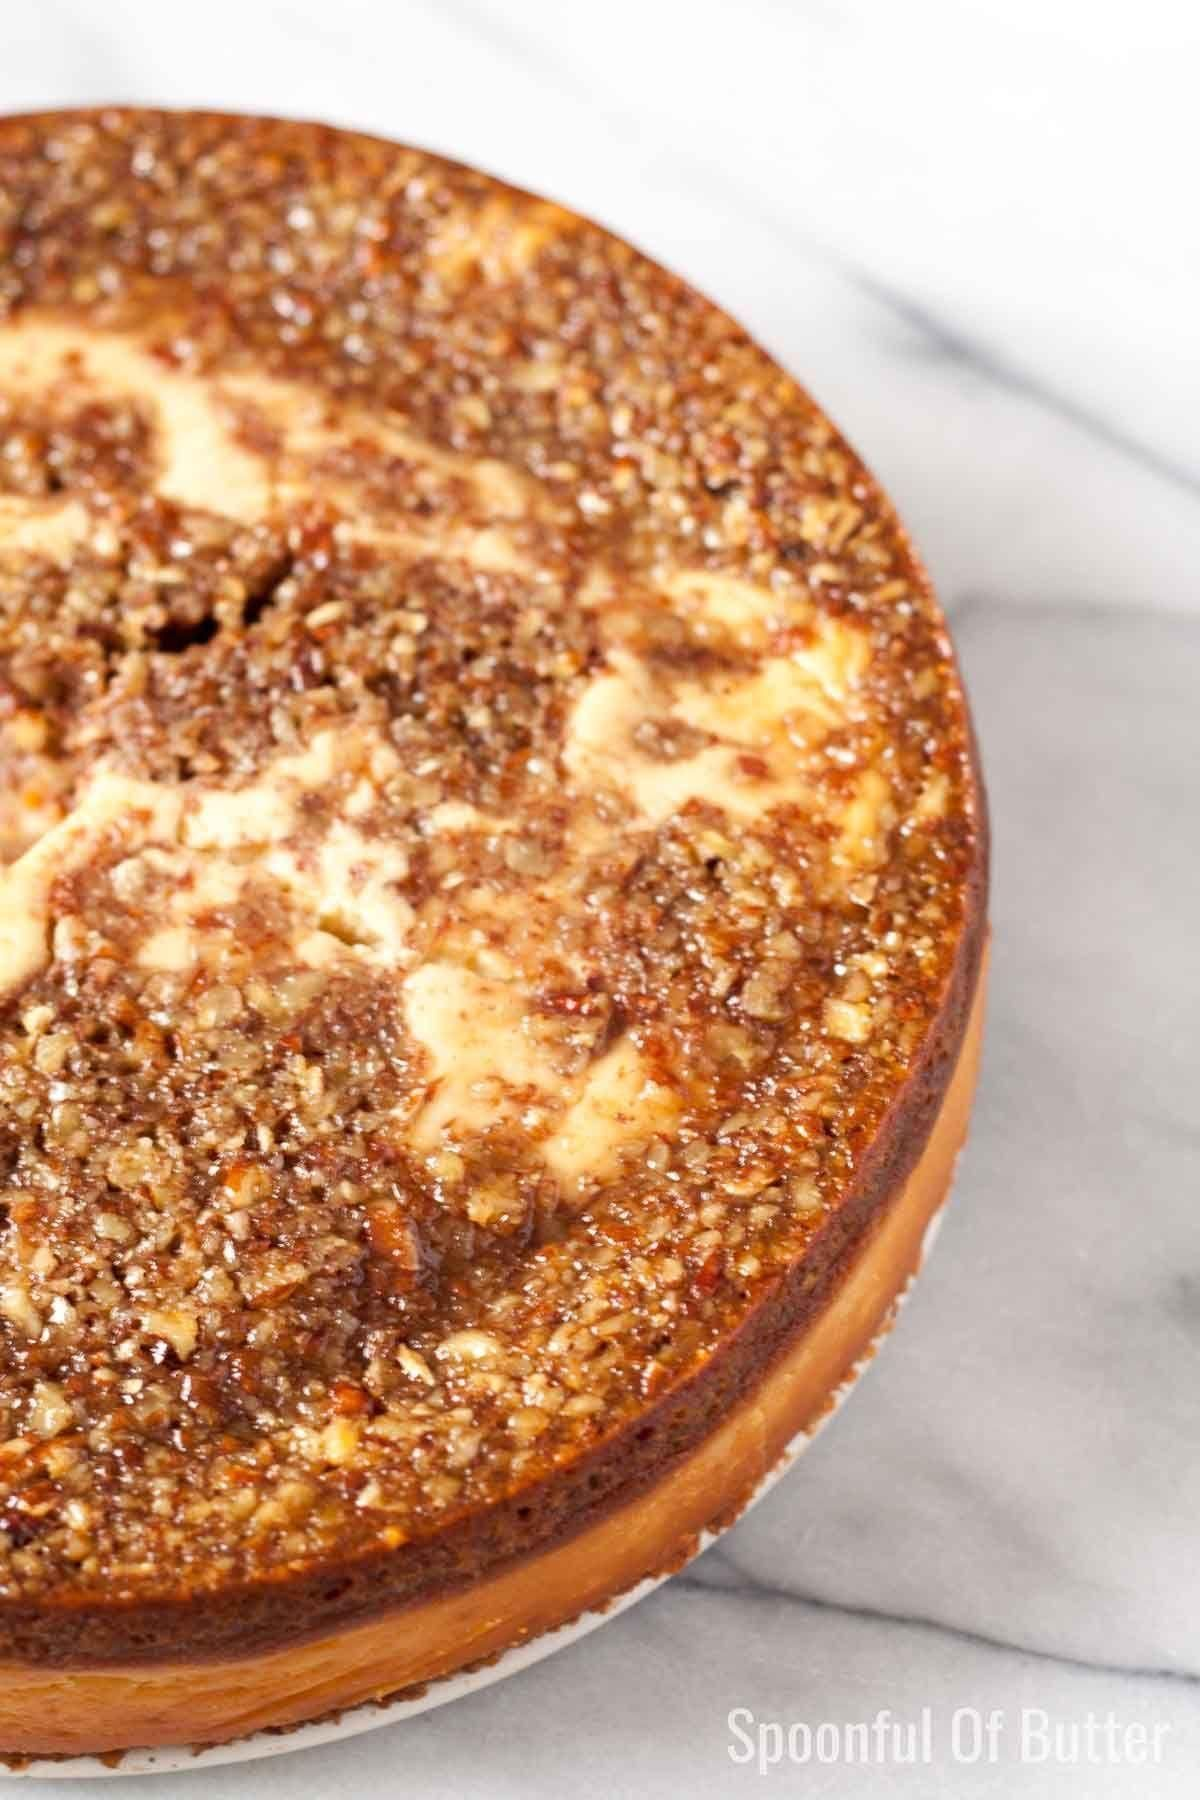 If you love Pecan Pie then you would definitely like this TO-DIE FOR cheesecake ... - Zoom - Pecan Pie #pecanpiecheesecakerecipe If you love Pecan Pie then you would definitely like this TO-DIE FOR cheesecake ... - Zoom - #Cheesecake #Love #PECAN #PIE #TODIE #Zoom #pecanpiecheesecakerecipe